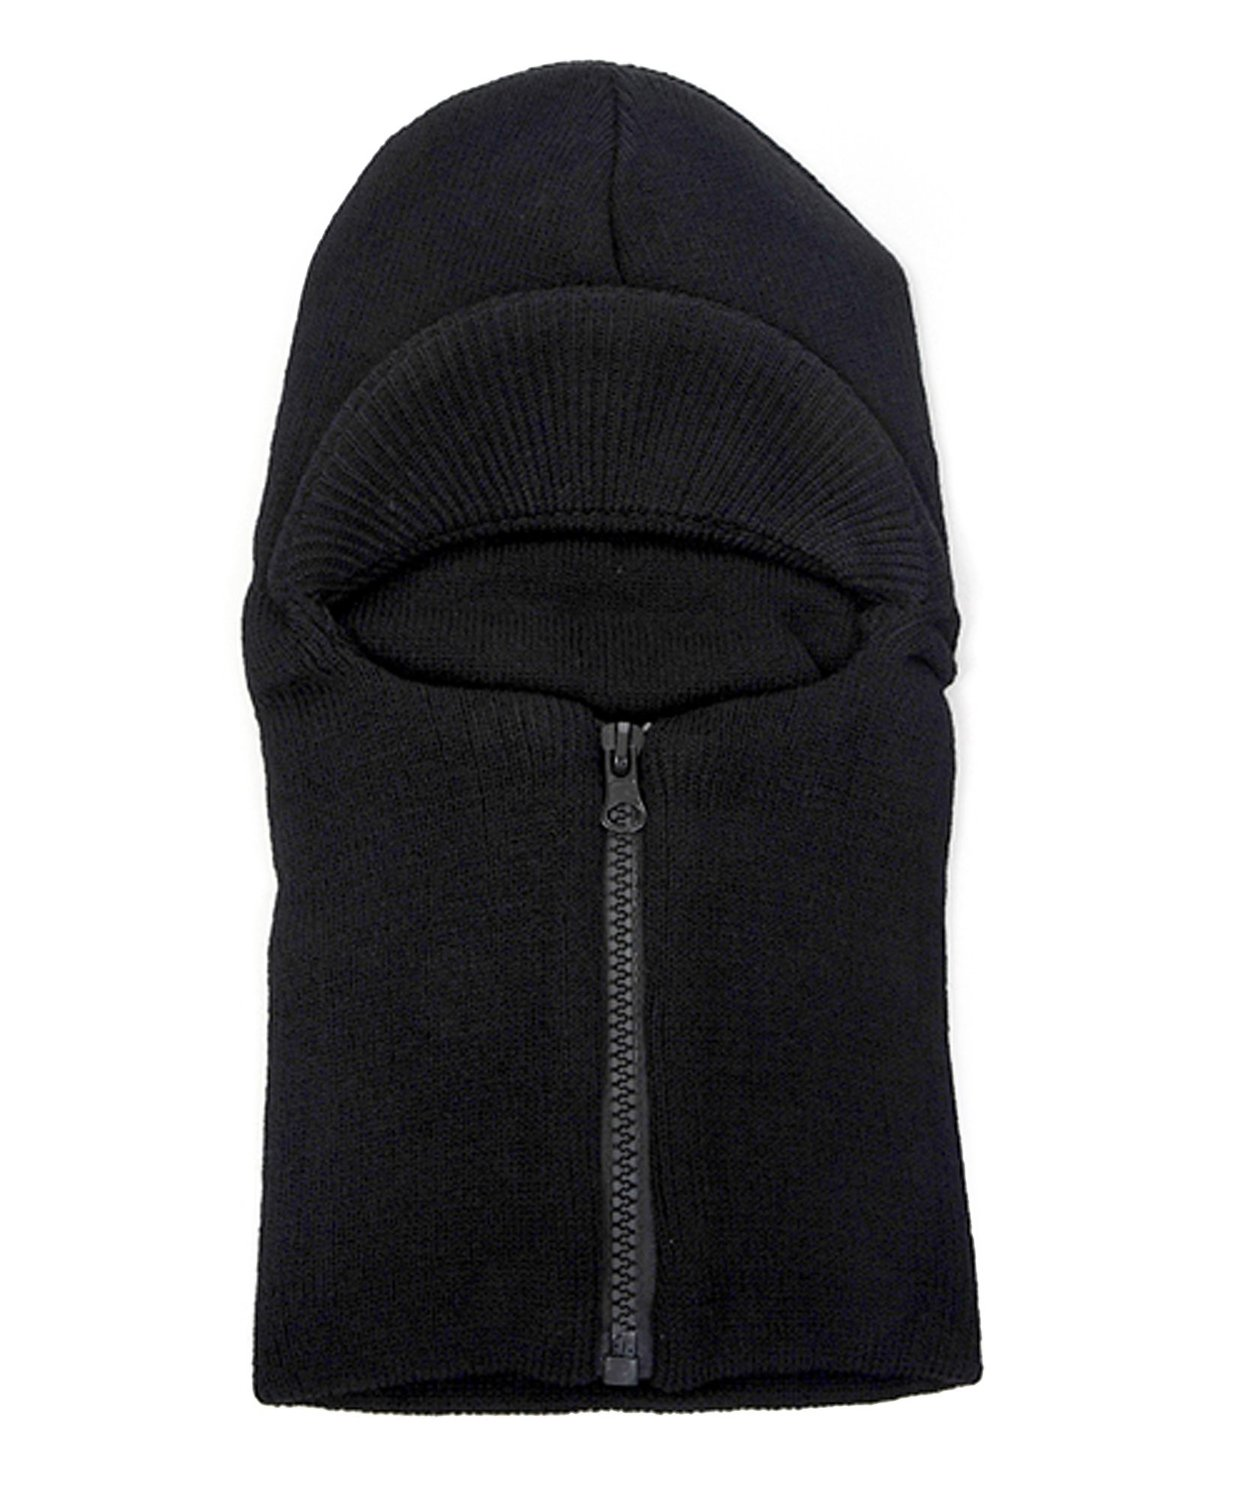 TheDapperTie Unisex Open-Face Knit Ski-Mask